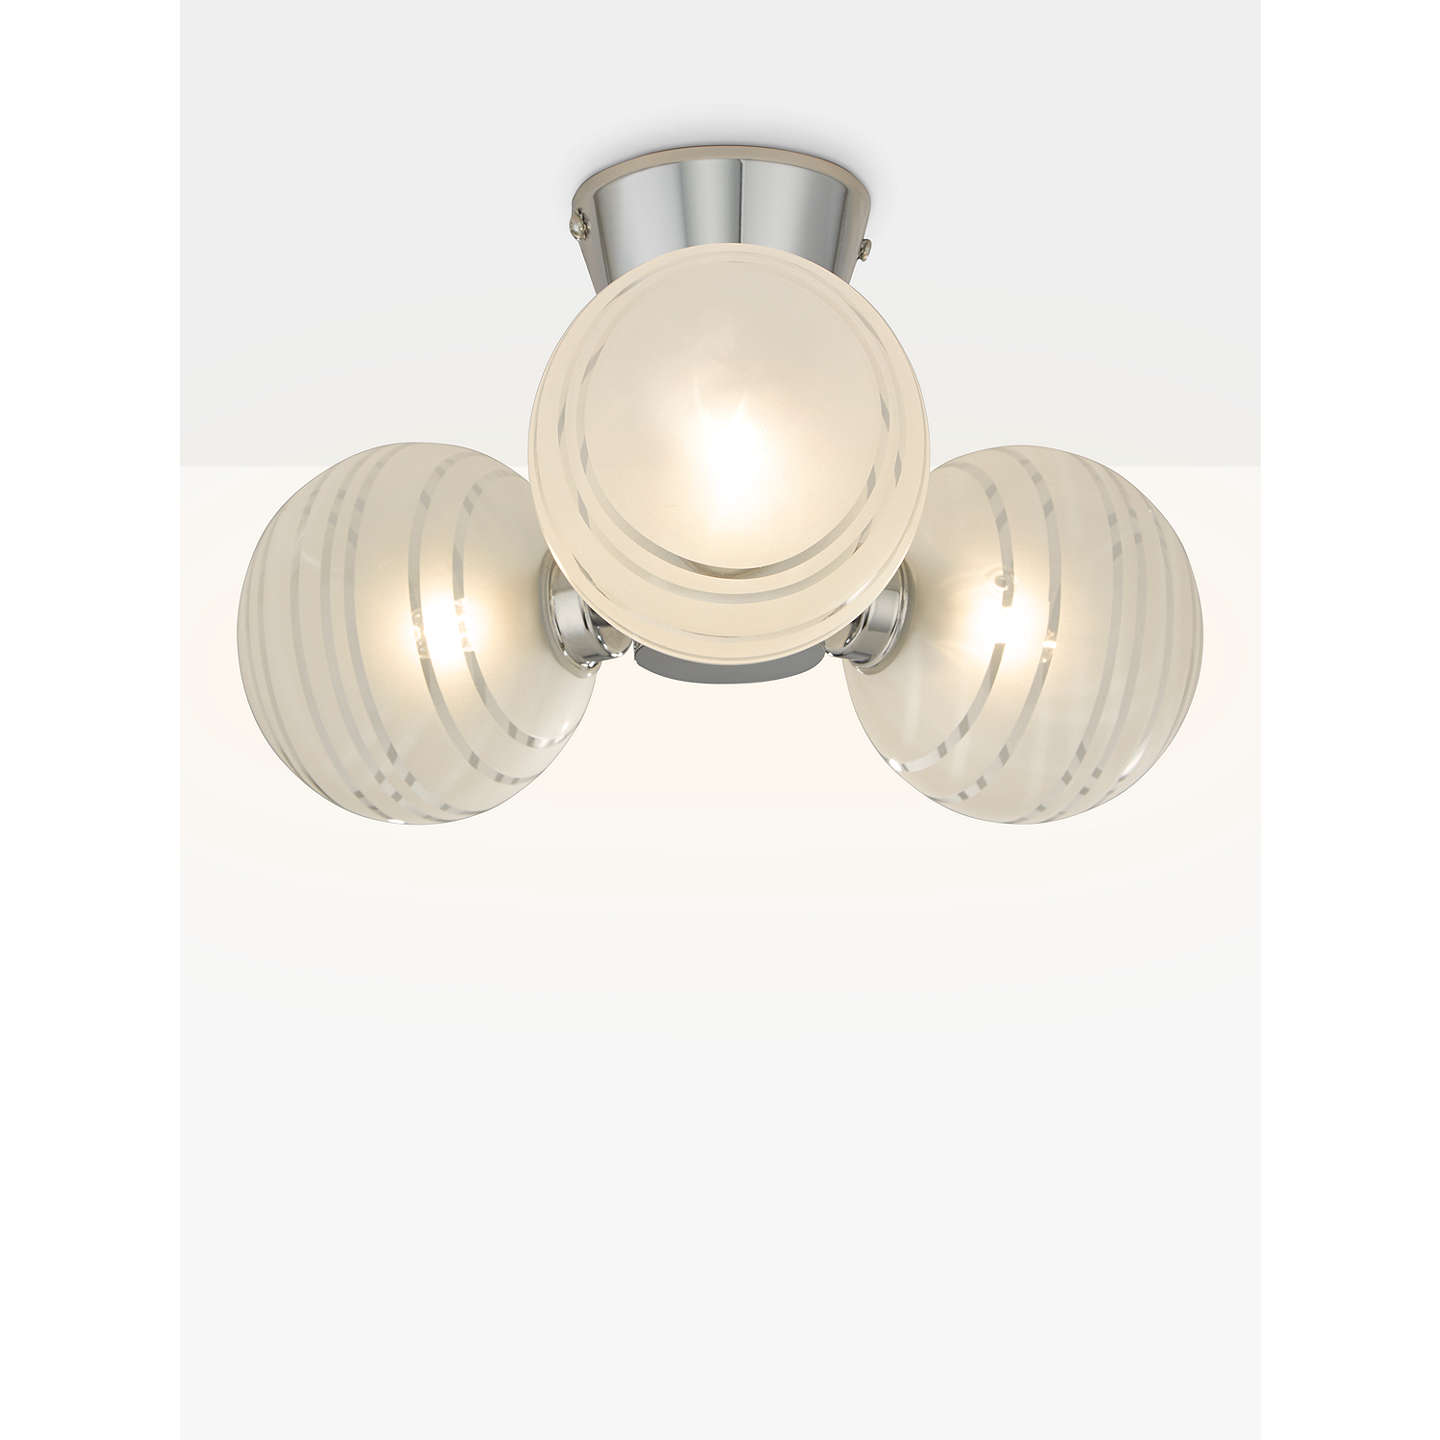 lights uncategorized best chrome home collection bathroom fixtures awesome lighting ideas depot light entrancing of modern bronze